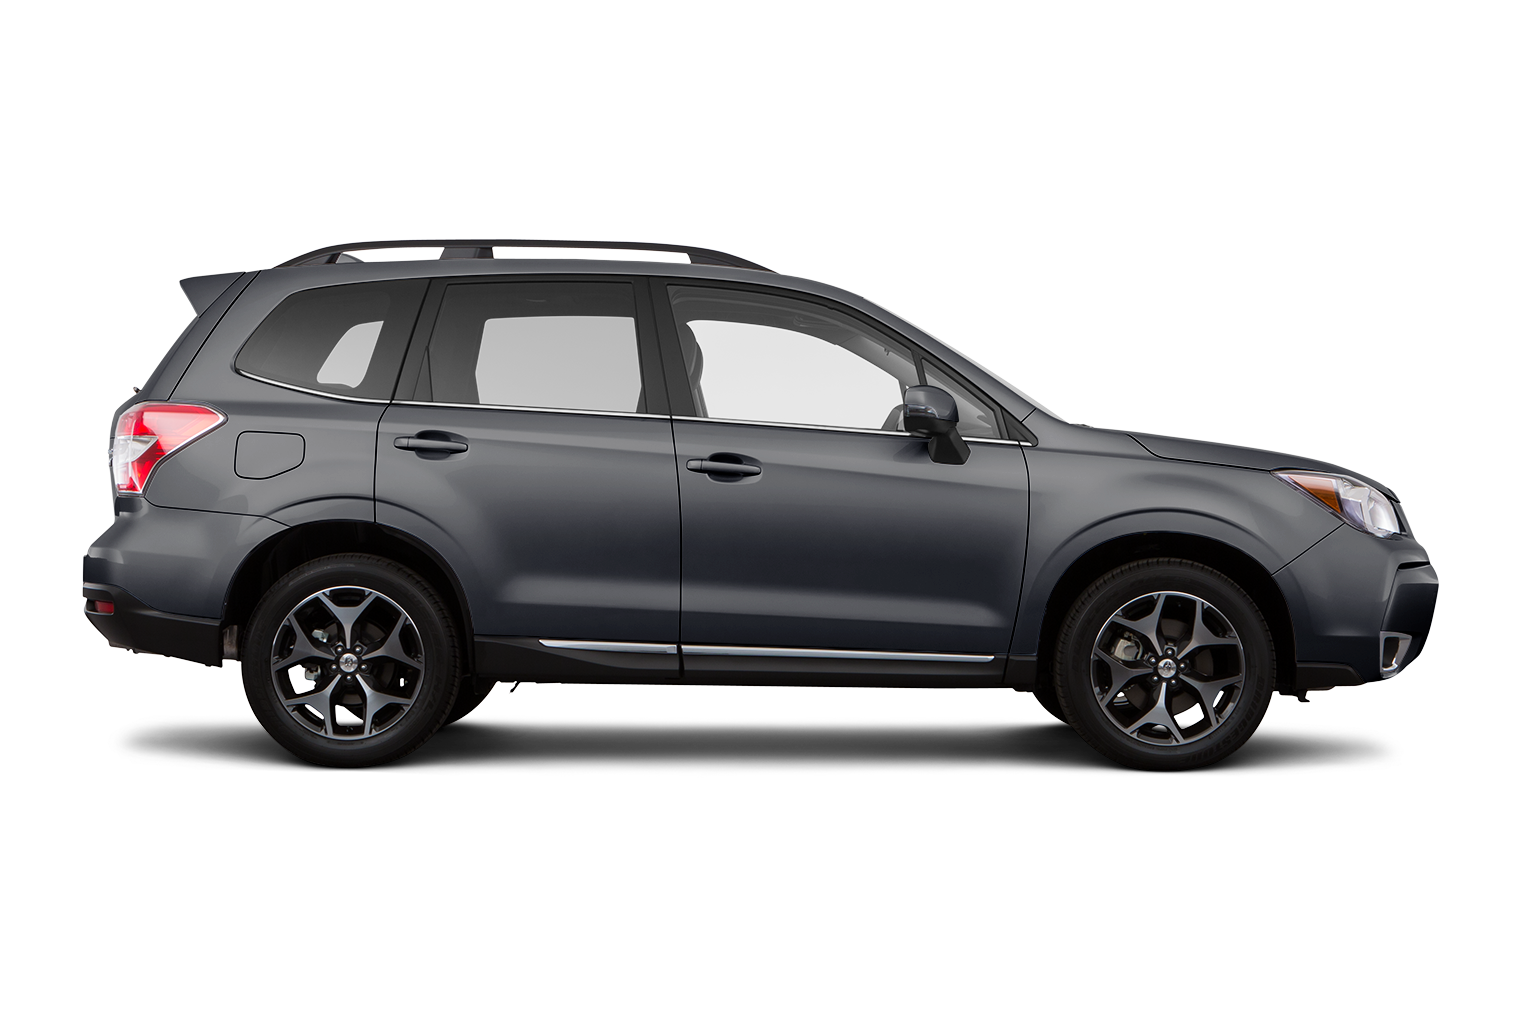 Build Your Own Subaru >> Build Your Own Subaru Forester On The Official Site